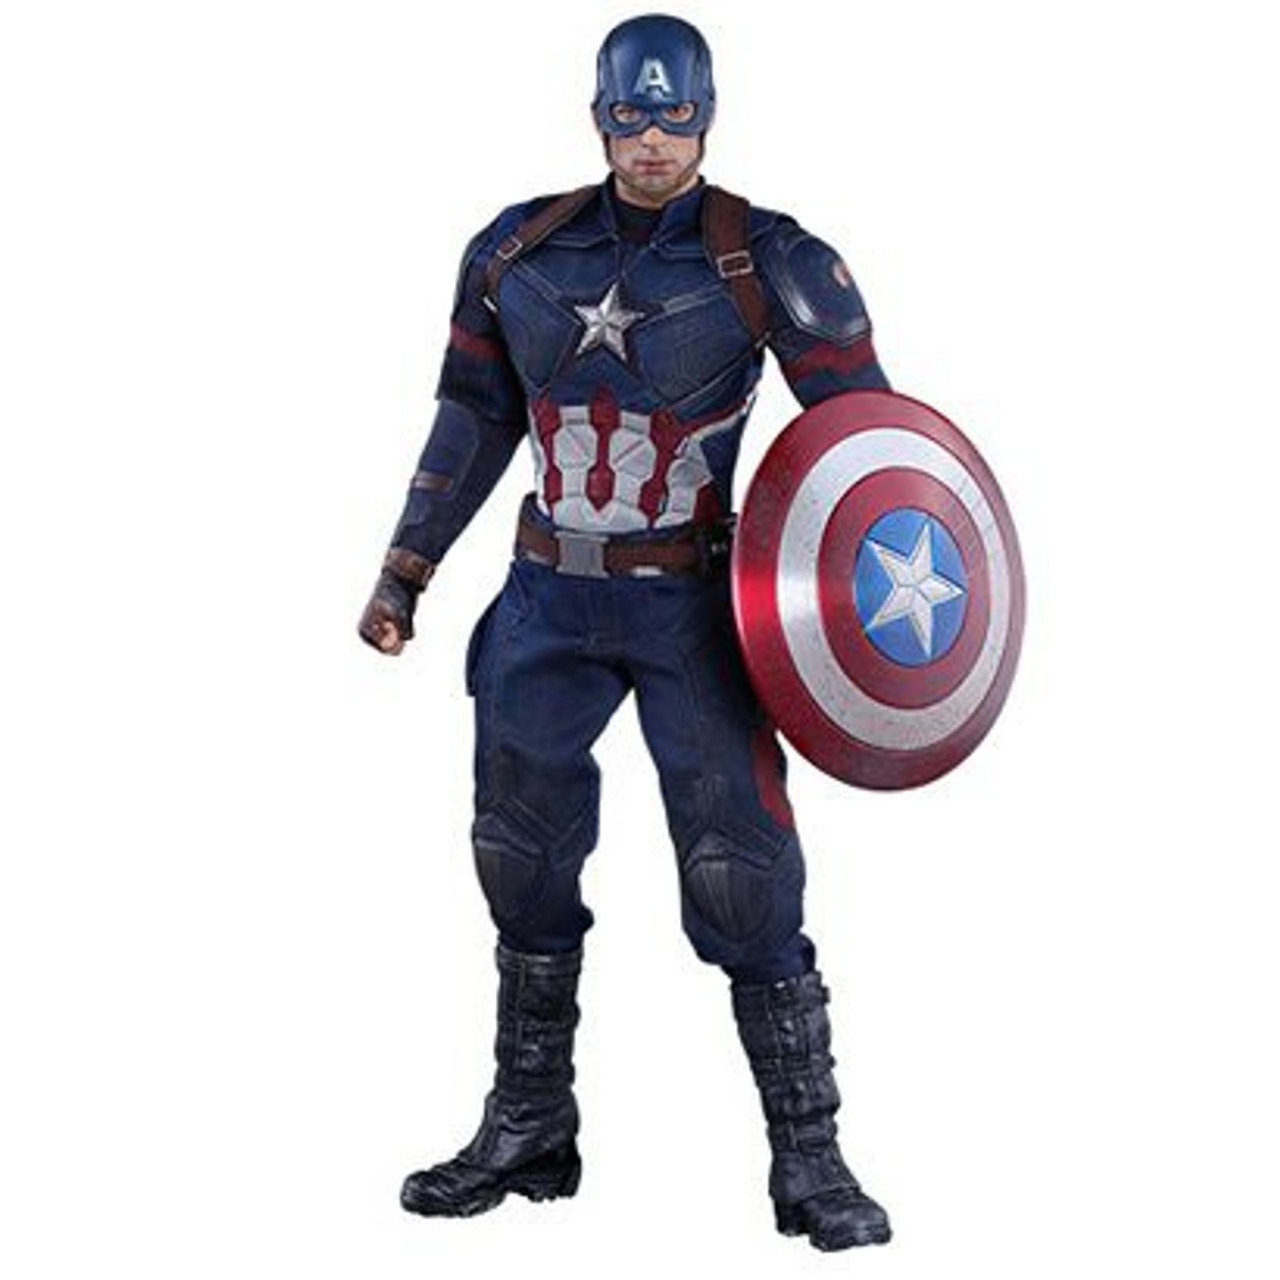 Marvel Captain America Civil War Captain America Exclusive 1/6 Collectible Figure [Battling Version]